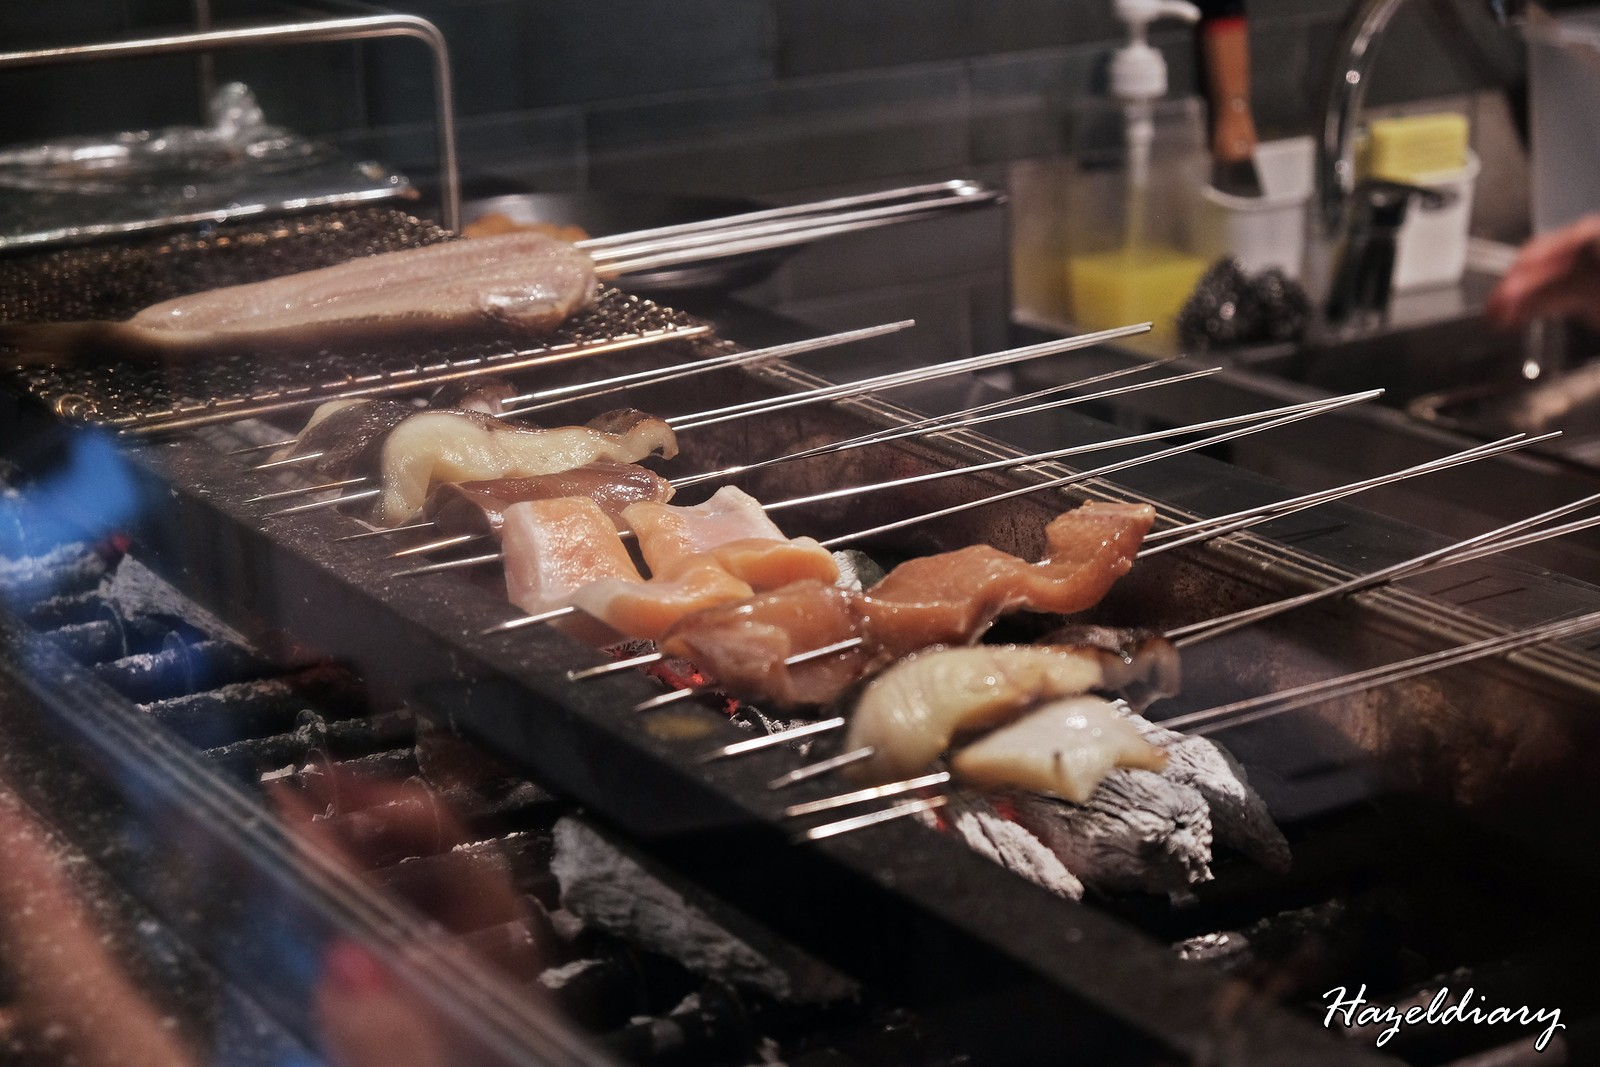 Charcoal grill and salad bar keisuke singapore-2